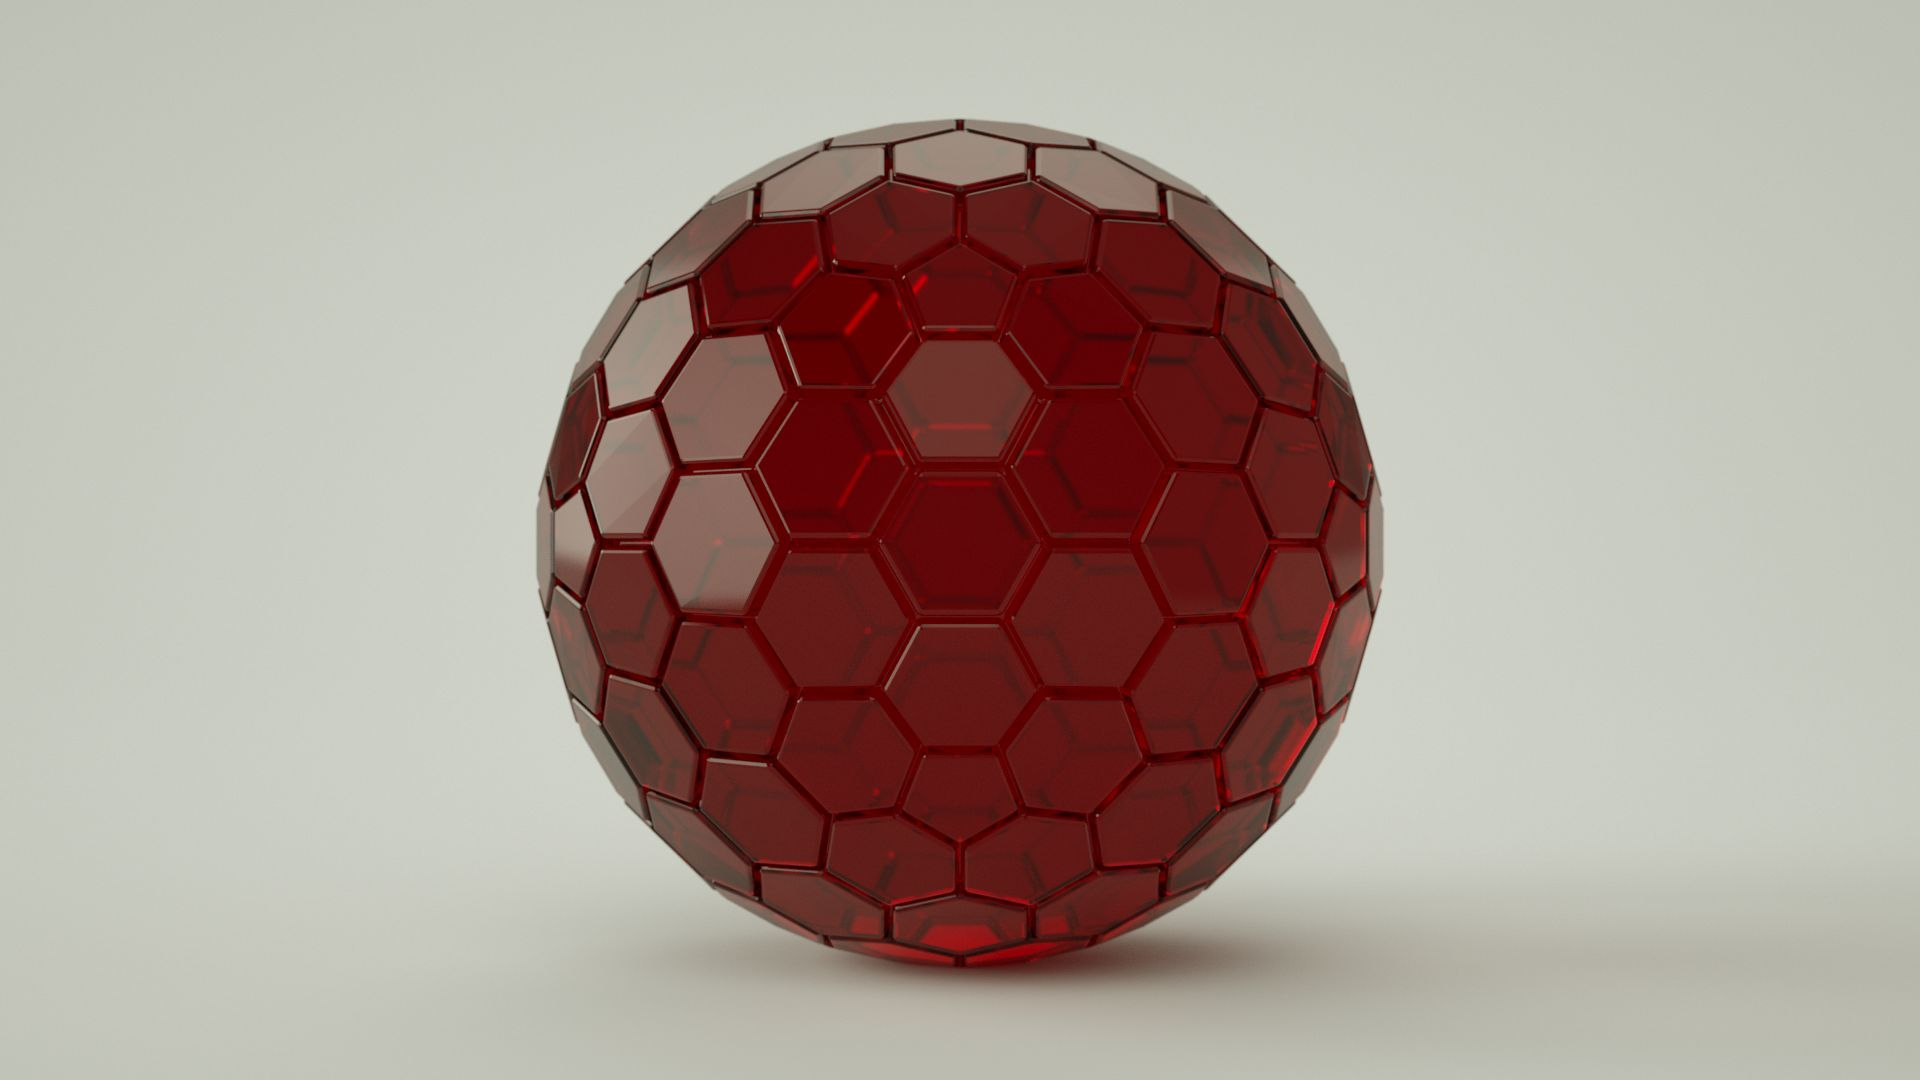 Red Wine - Octane Material